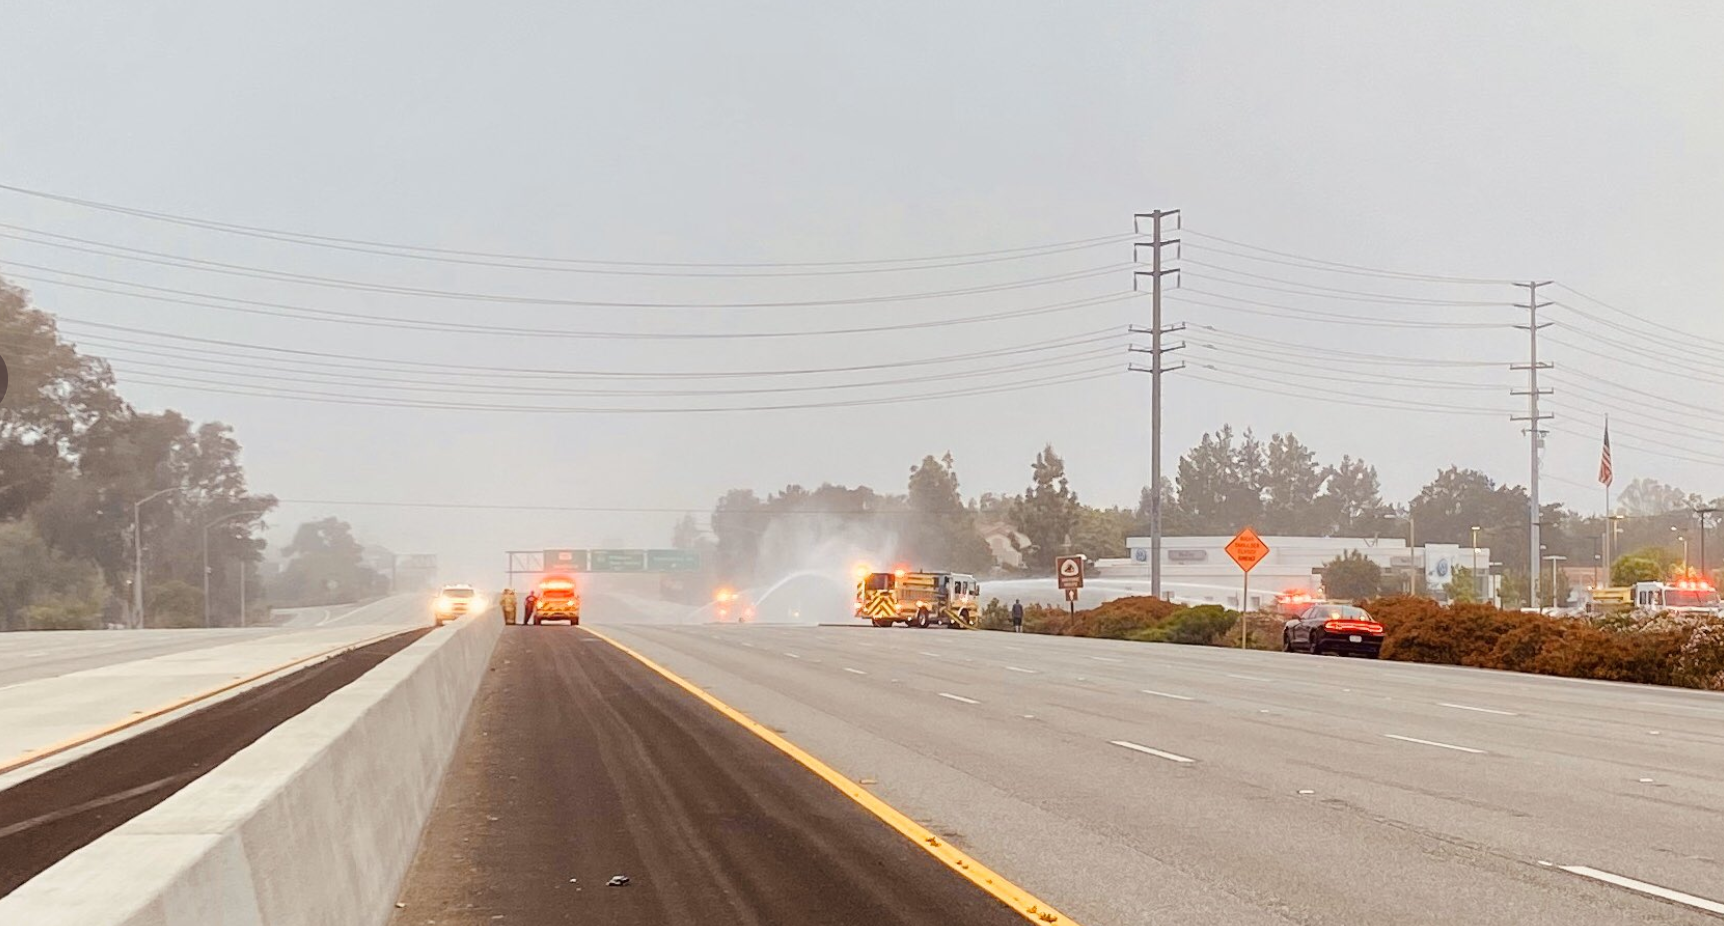 Firefighters put out flames engulfing a semi-truck along the 101 Freeway in Thousand Oaks on May 10, 2020 (California Highway Patrol - Moorpark via Twitter)